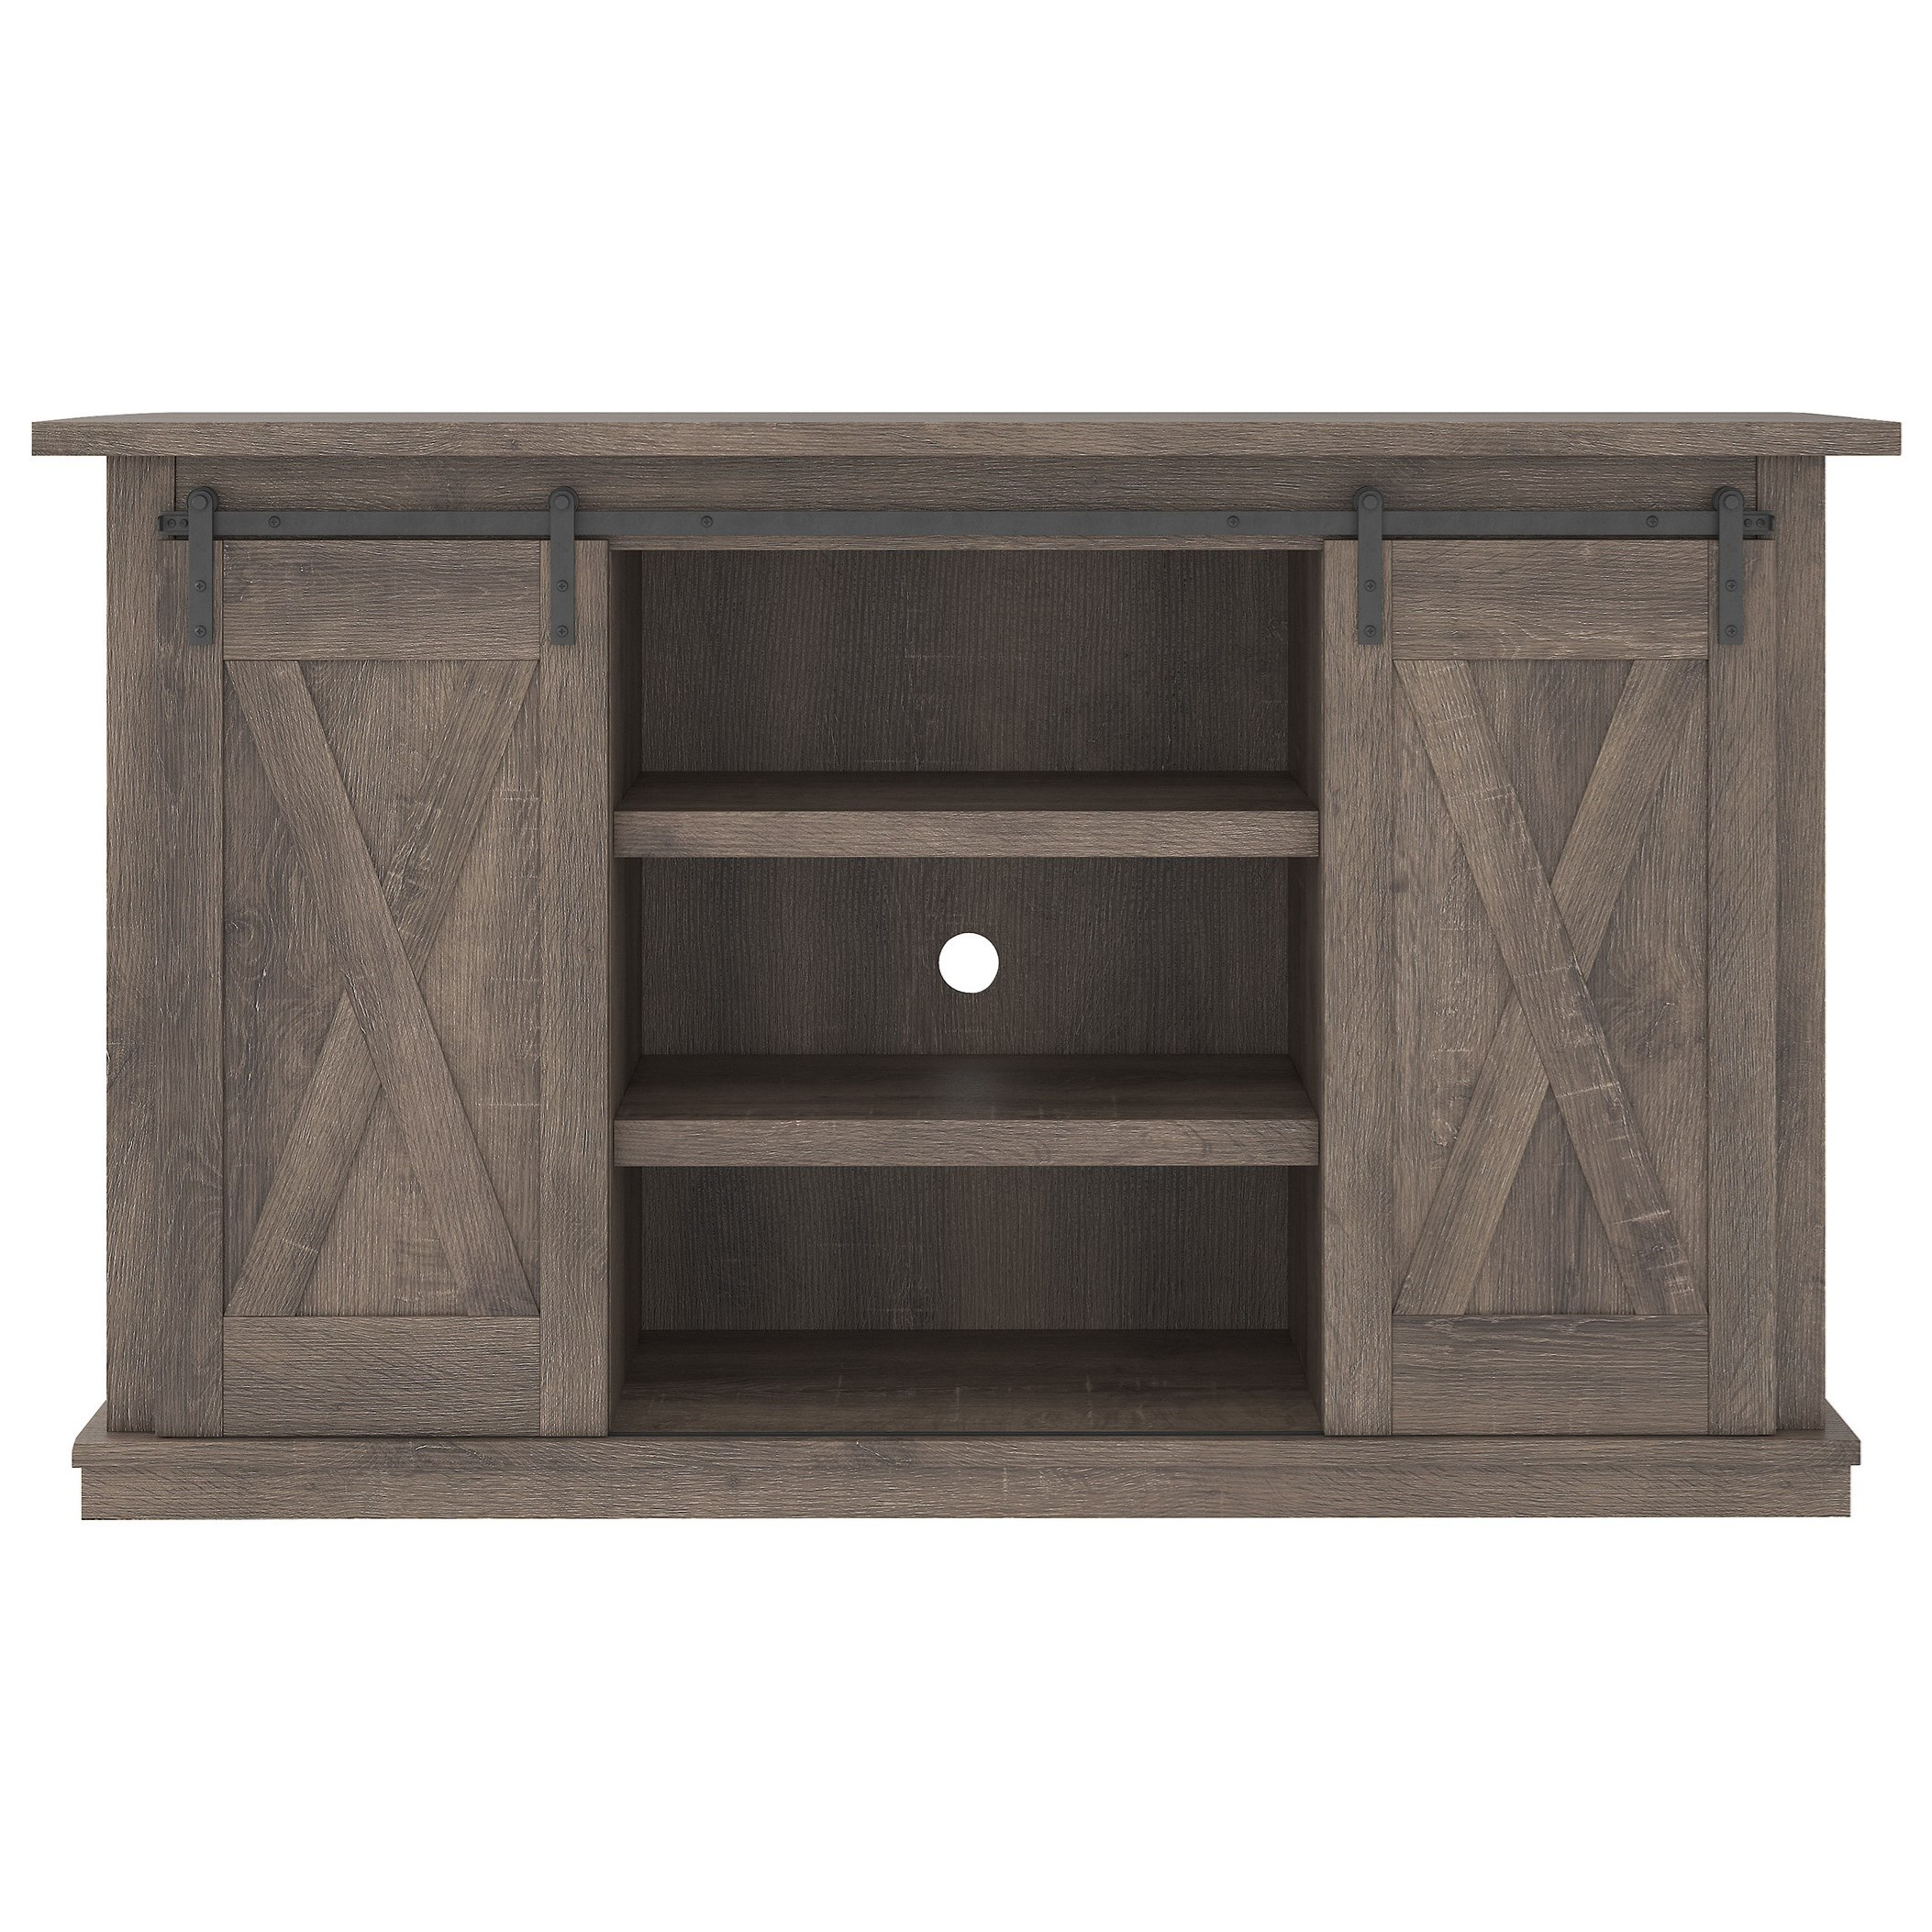 Arlenbry Medium TV Stand by Signature Design at Fisher Home Furnishings